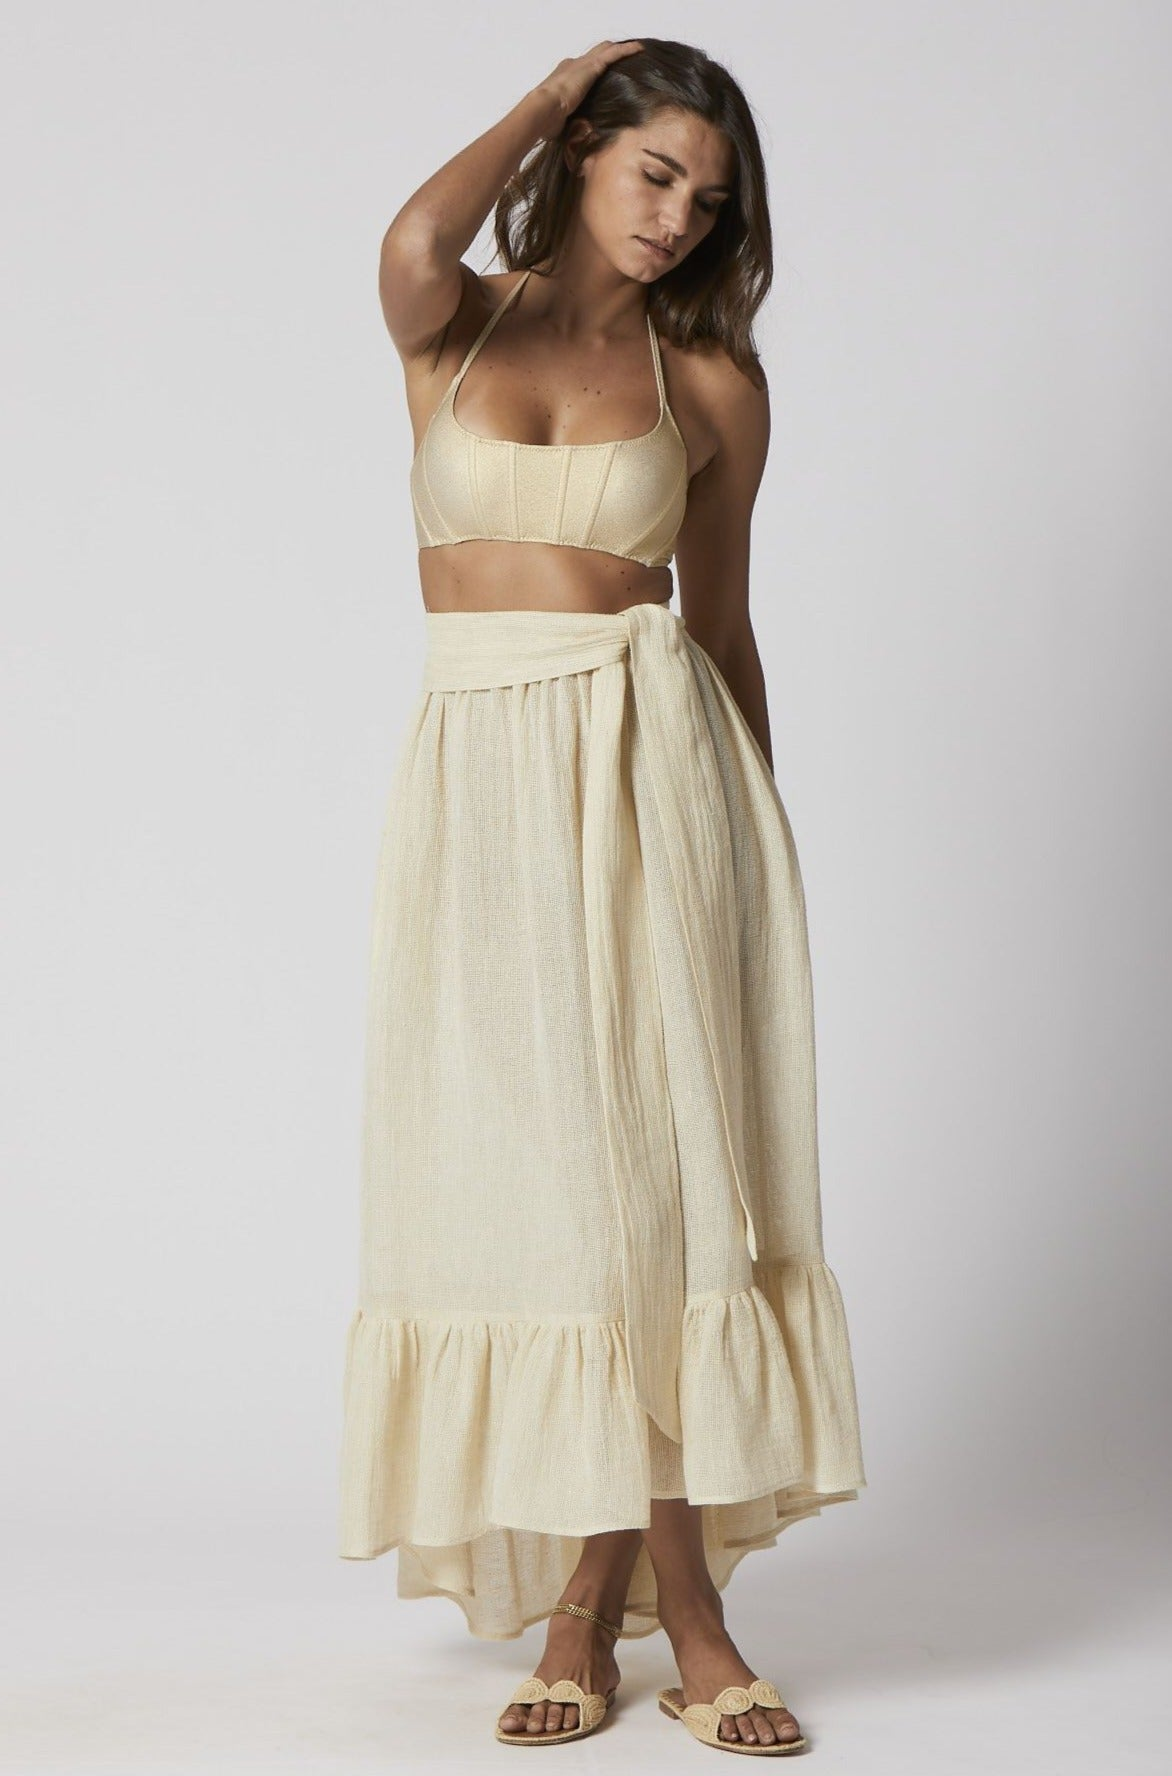 NATURAL CHIOS GAUZE NICOLE SKIRT